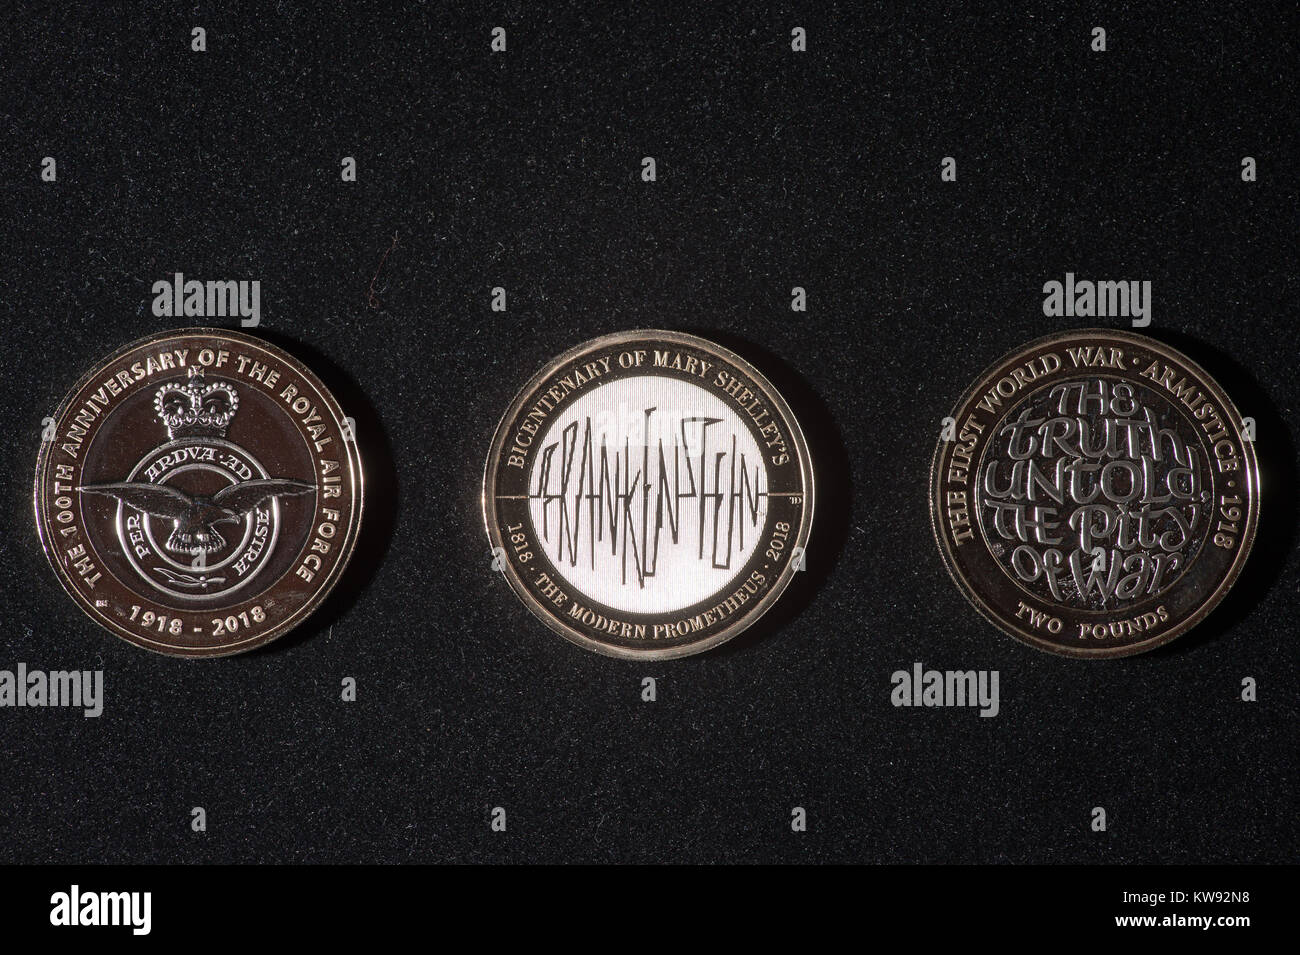 EMBARGOED TO 0001 MONDAY JANUARY 1 Three new circulation £2 coin designs from the Royal Mint featuring - Stock Image